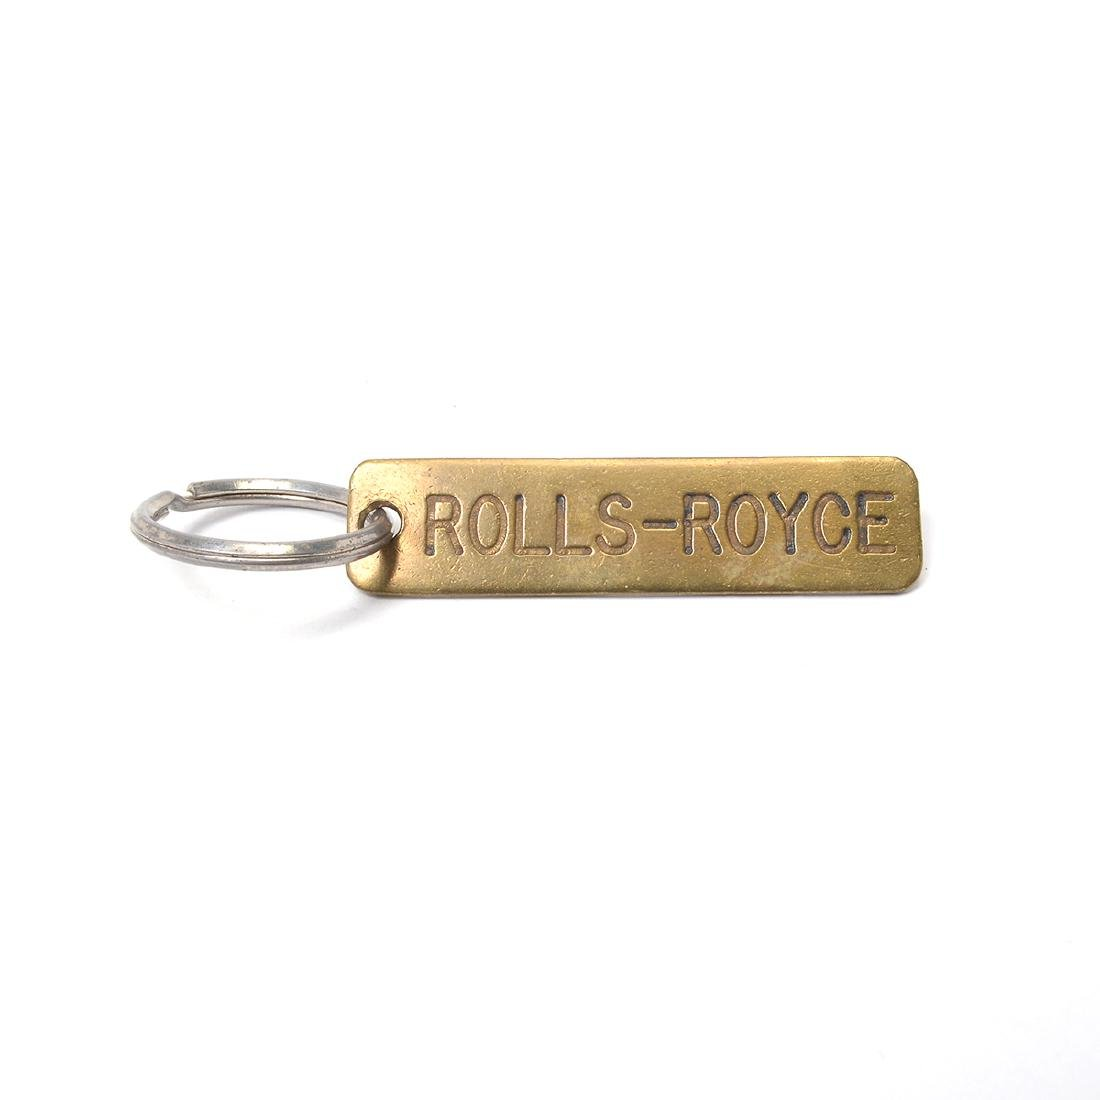 Royal Royce Hood Ornament, Floral Vase, Key Chain and - 5